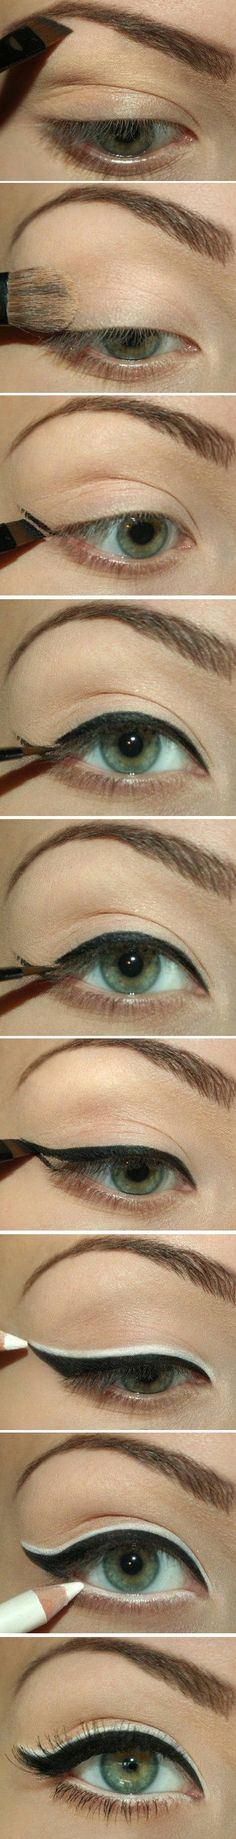 Black and White Cat Eye Cat Eyeliner Tutorial #Tutorial #Cat #Eyeliner #smokey #Seductive #date #look #Color #Eyeshadow #Ideas #Inspiration #Eyes #Makeup #Bbloggers #nails #lips